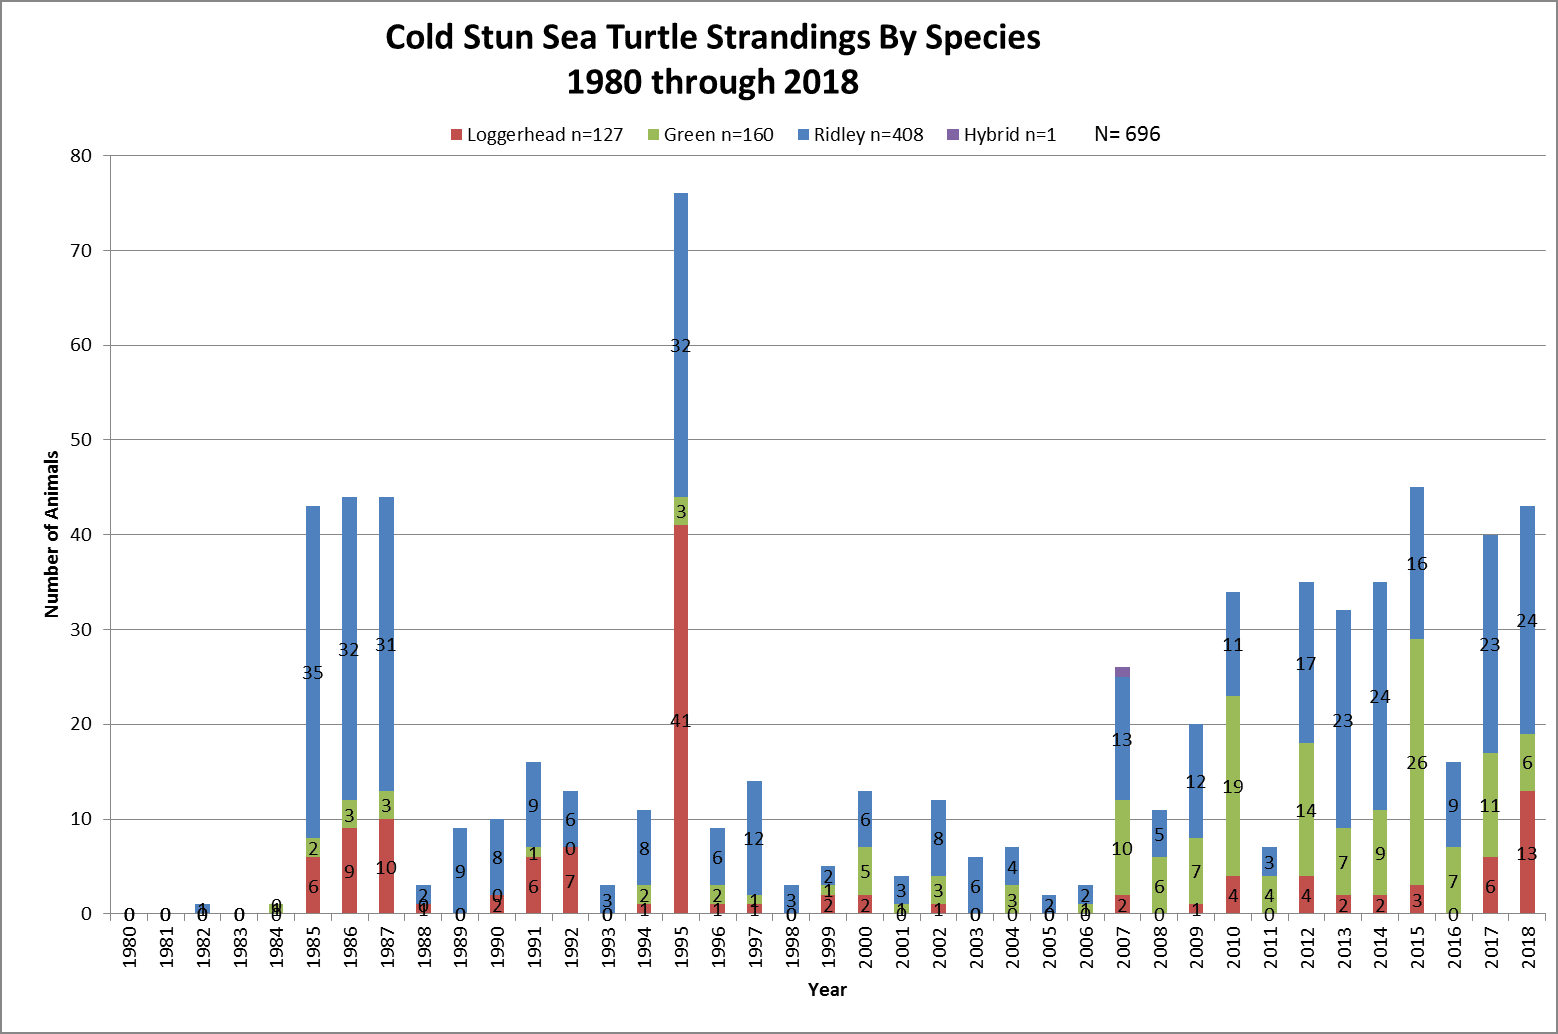 Cold-Stun-Sea-Turtle-Strandings-by-Species-through-2018